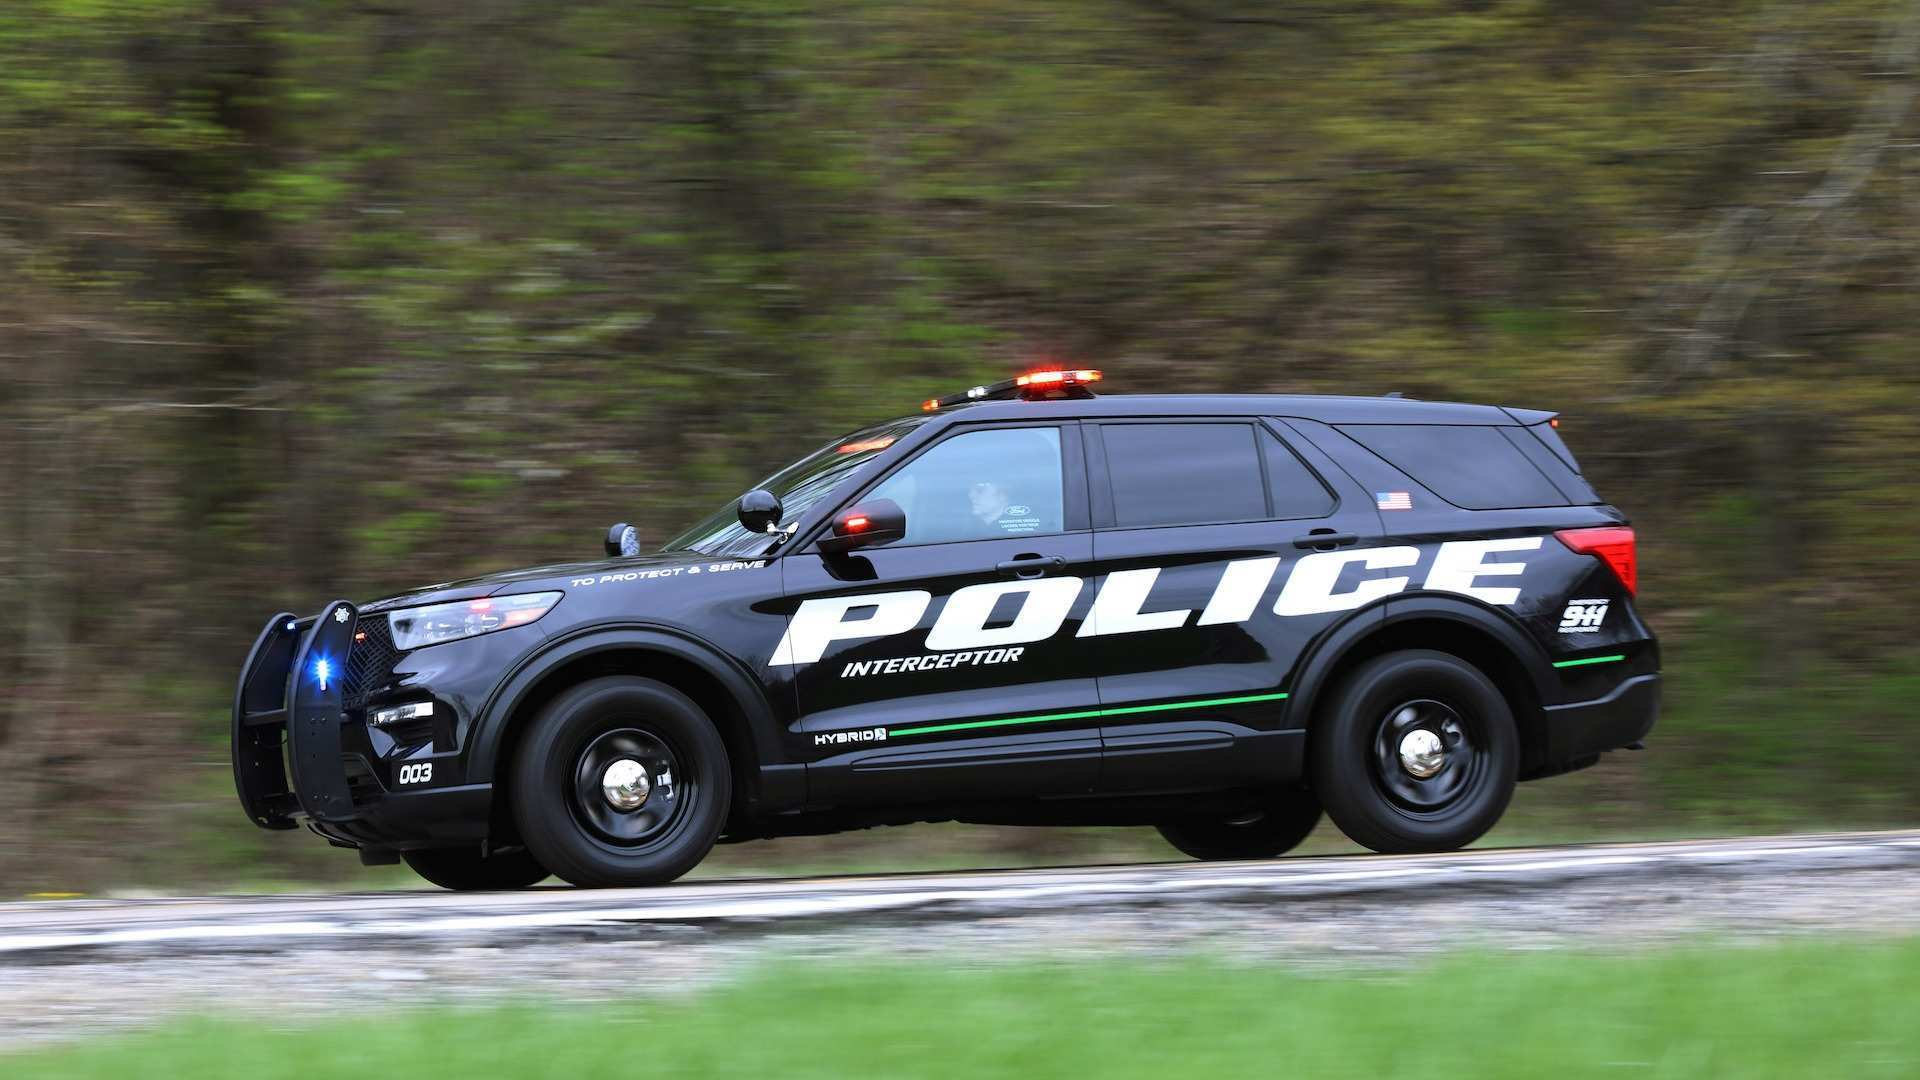 14 Best Ford Police Interceptor 2020 Research New